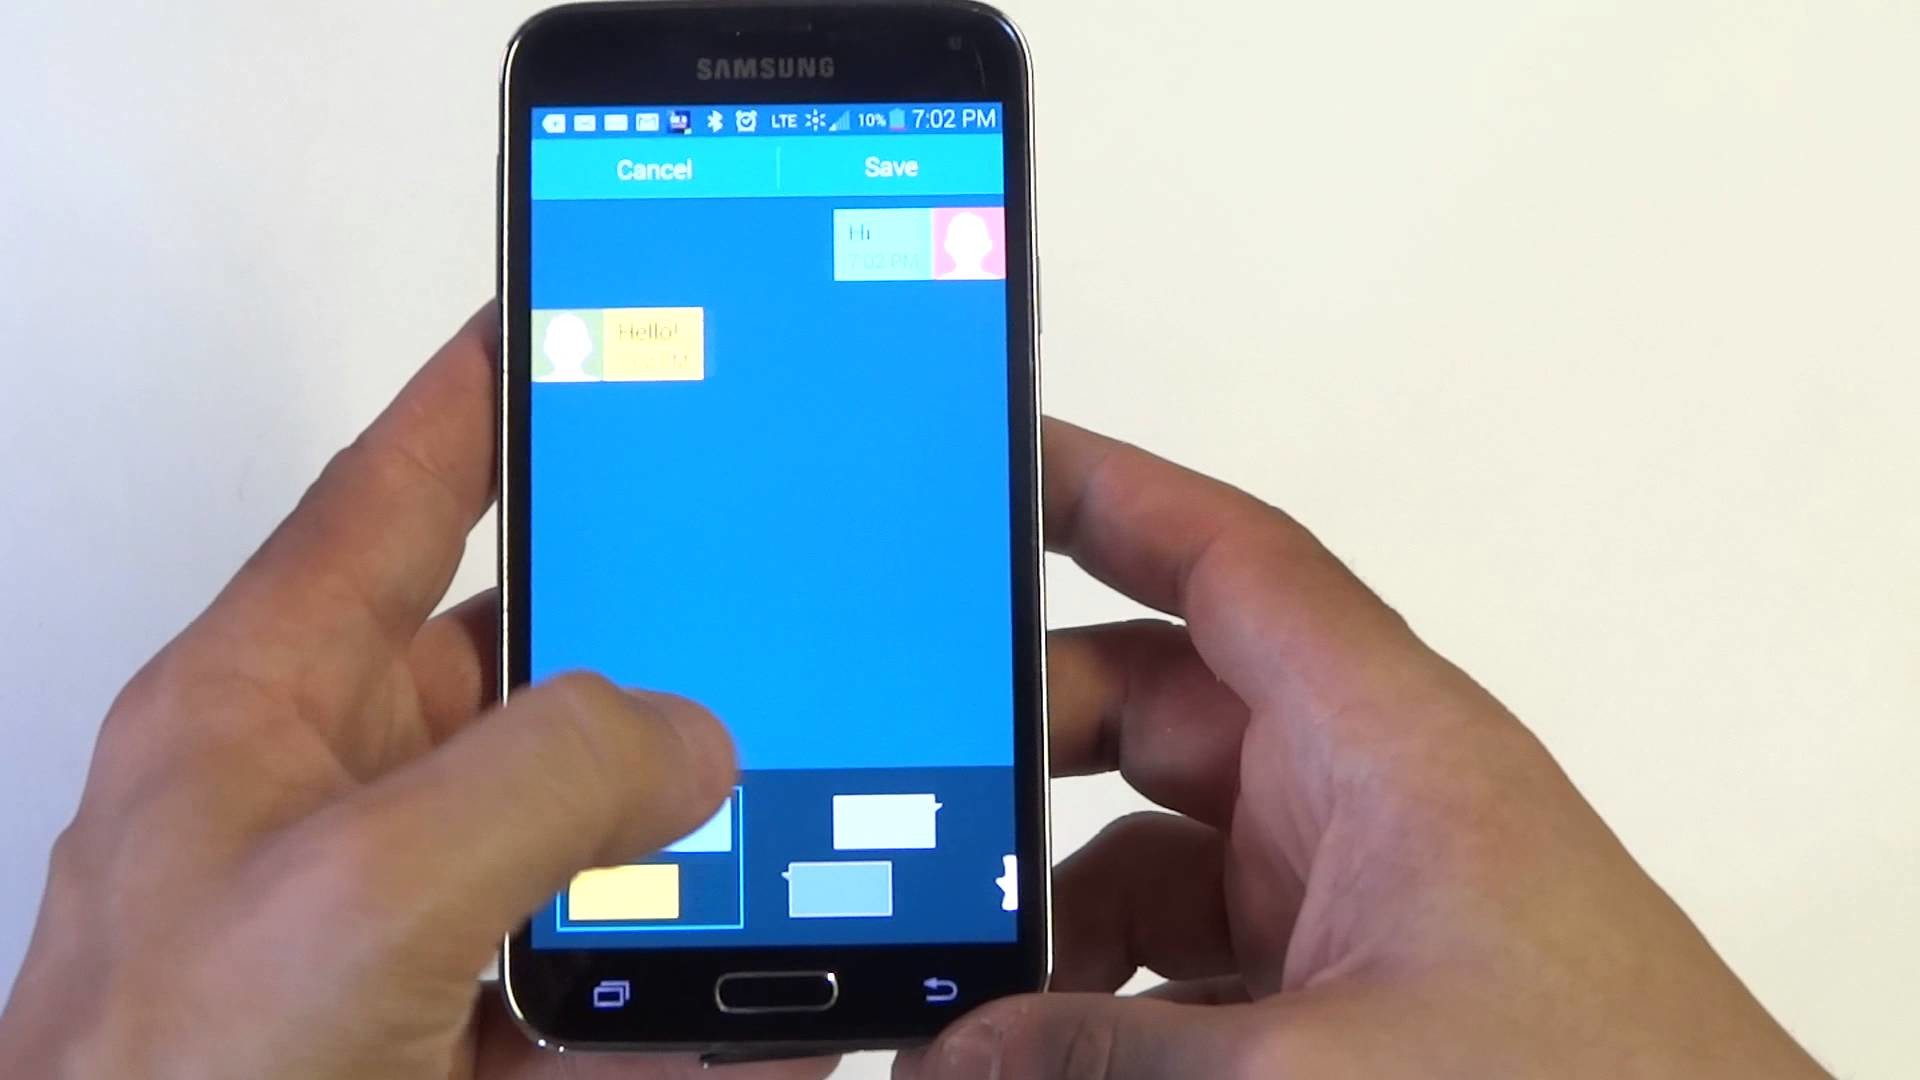 Res: 1920x1080, Samsung Galaxy S5: How to Change Text Messages Background Style -  Fliptroniks.com - YouTube